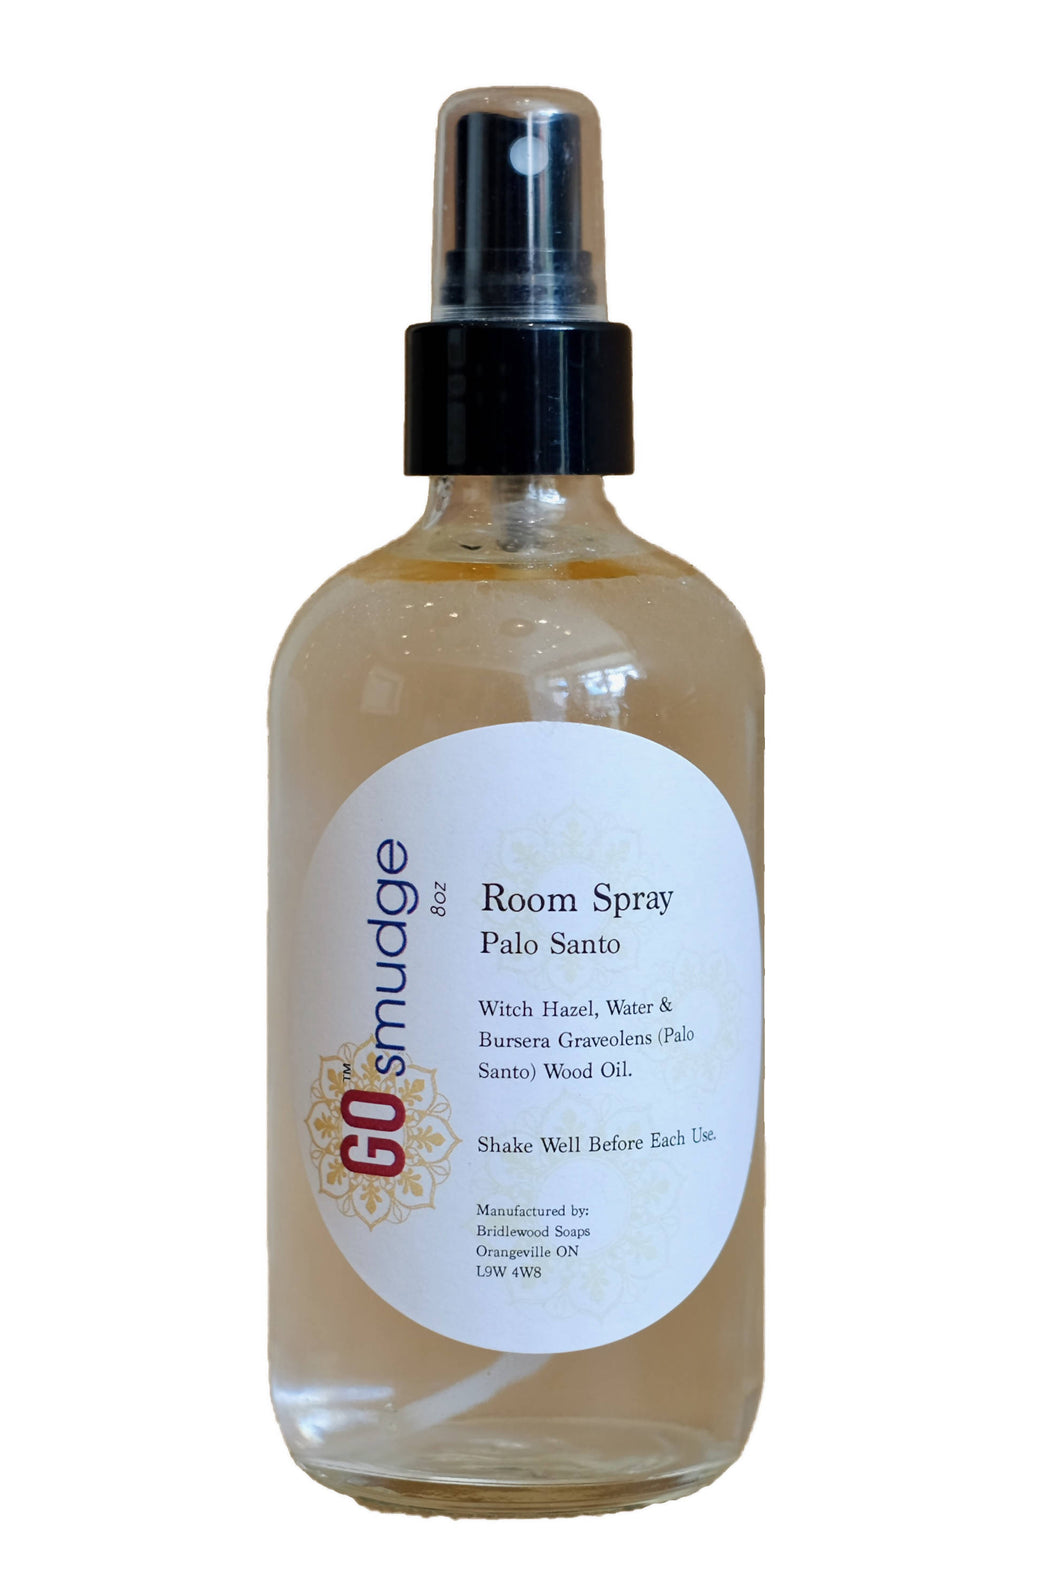 Go Smudge Room Spray